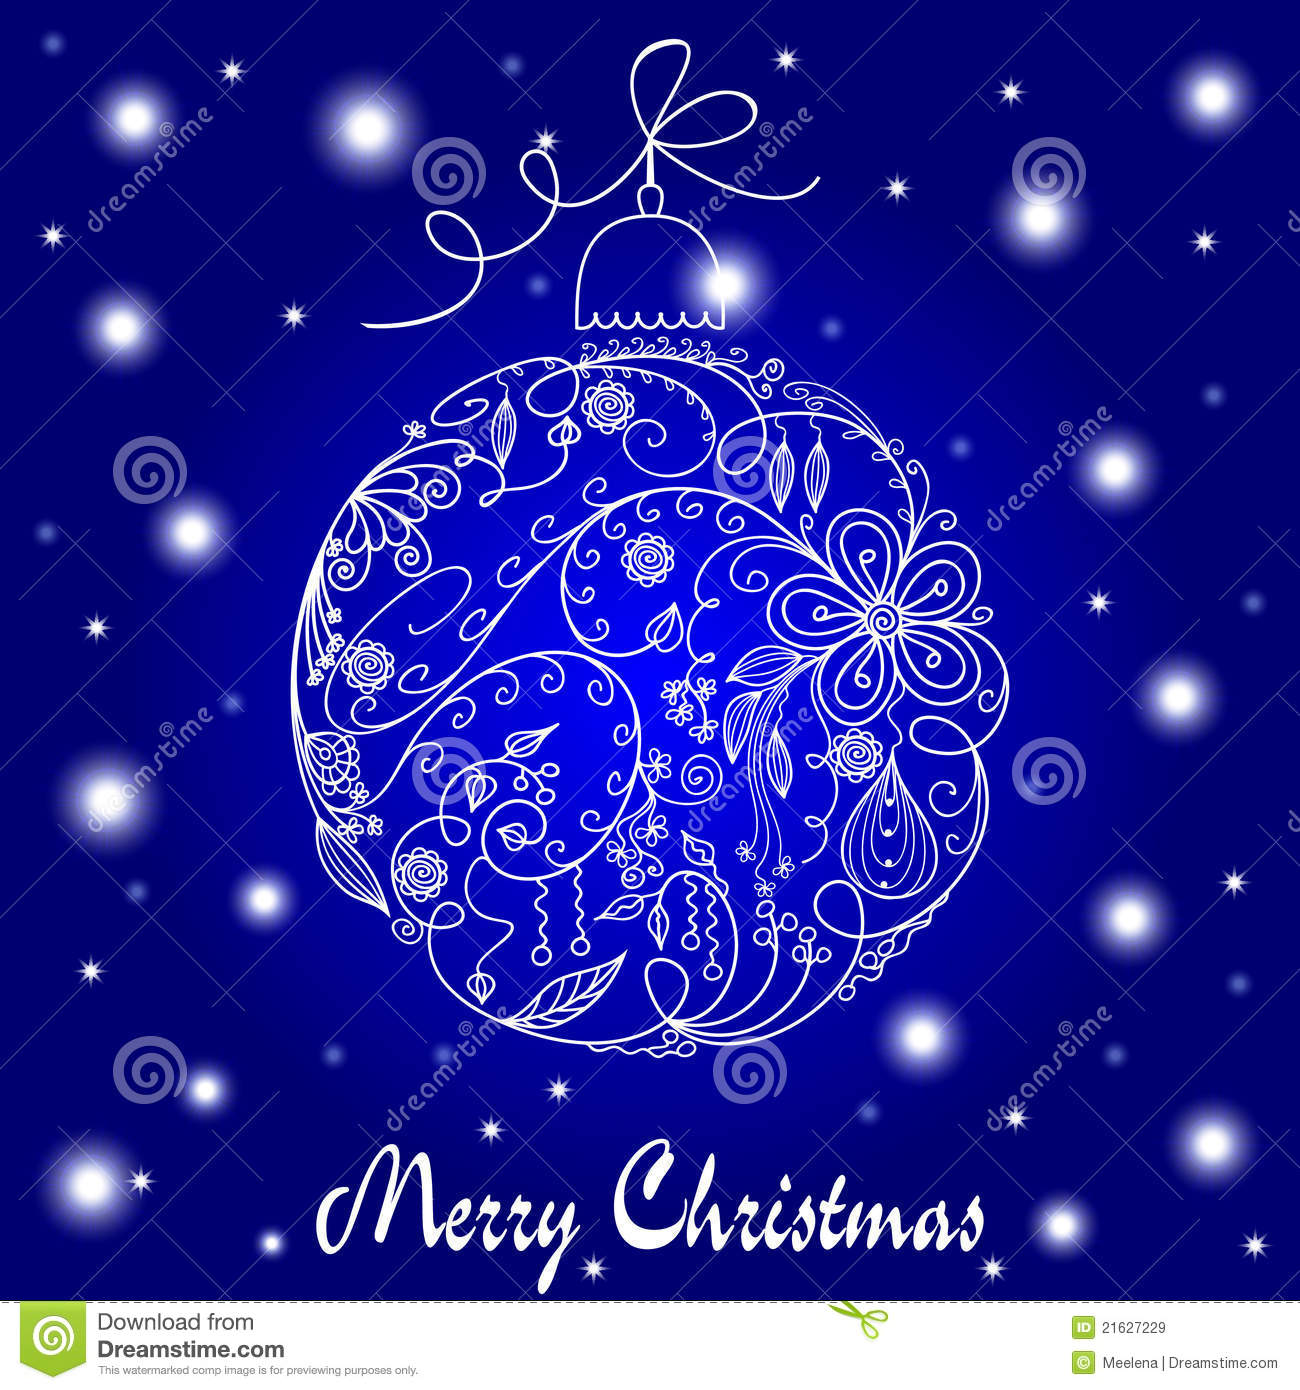 Blue And White Christmas Card Stock Vector Illustration